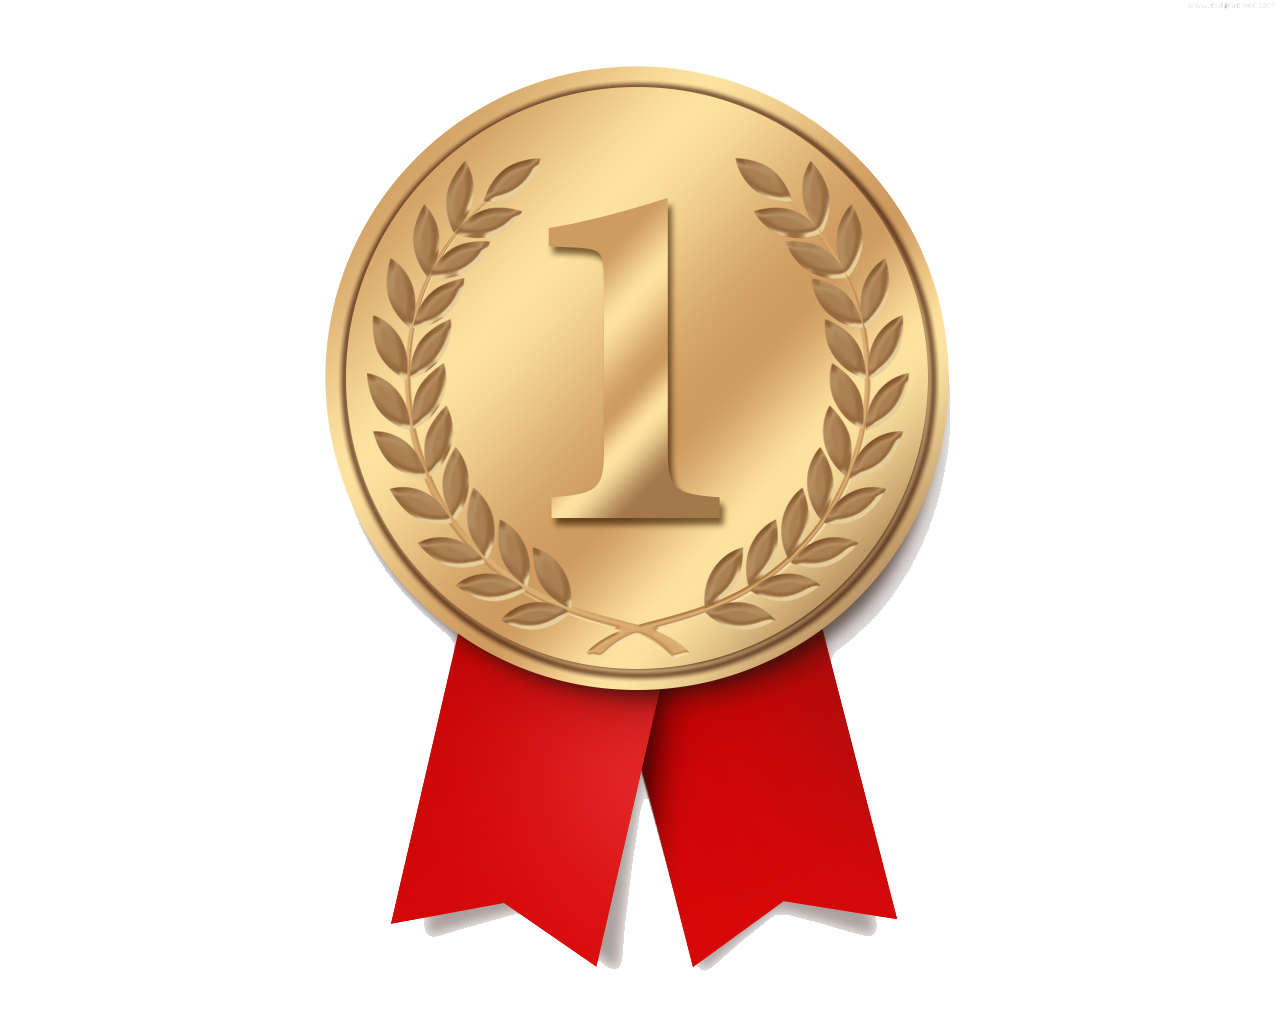 Gold Medal High Quality PNG - Gold Award PNG